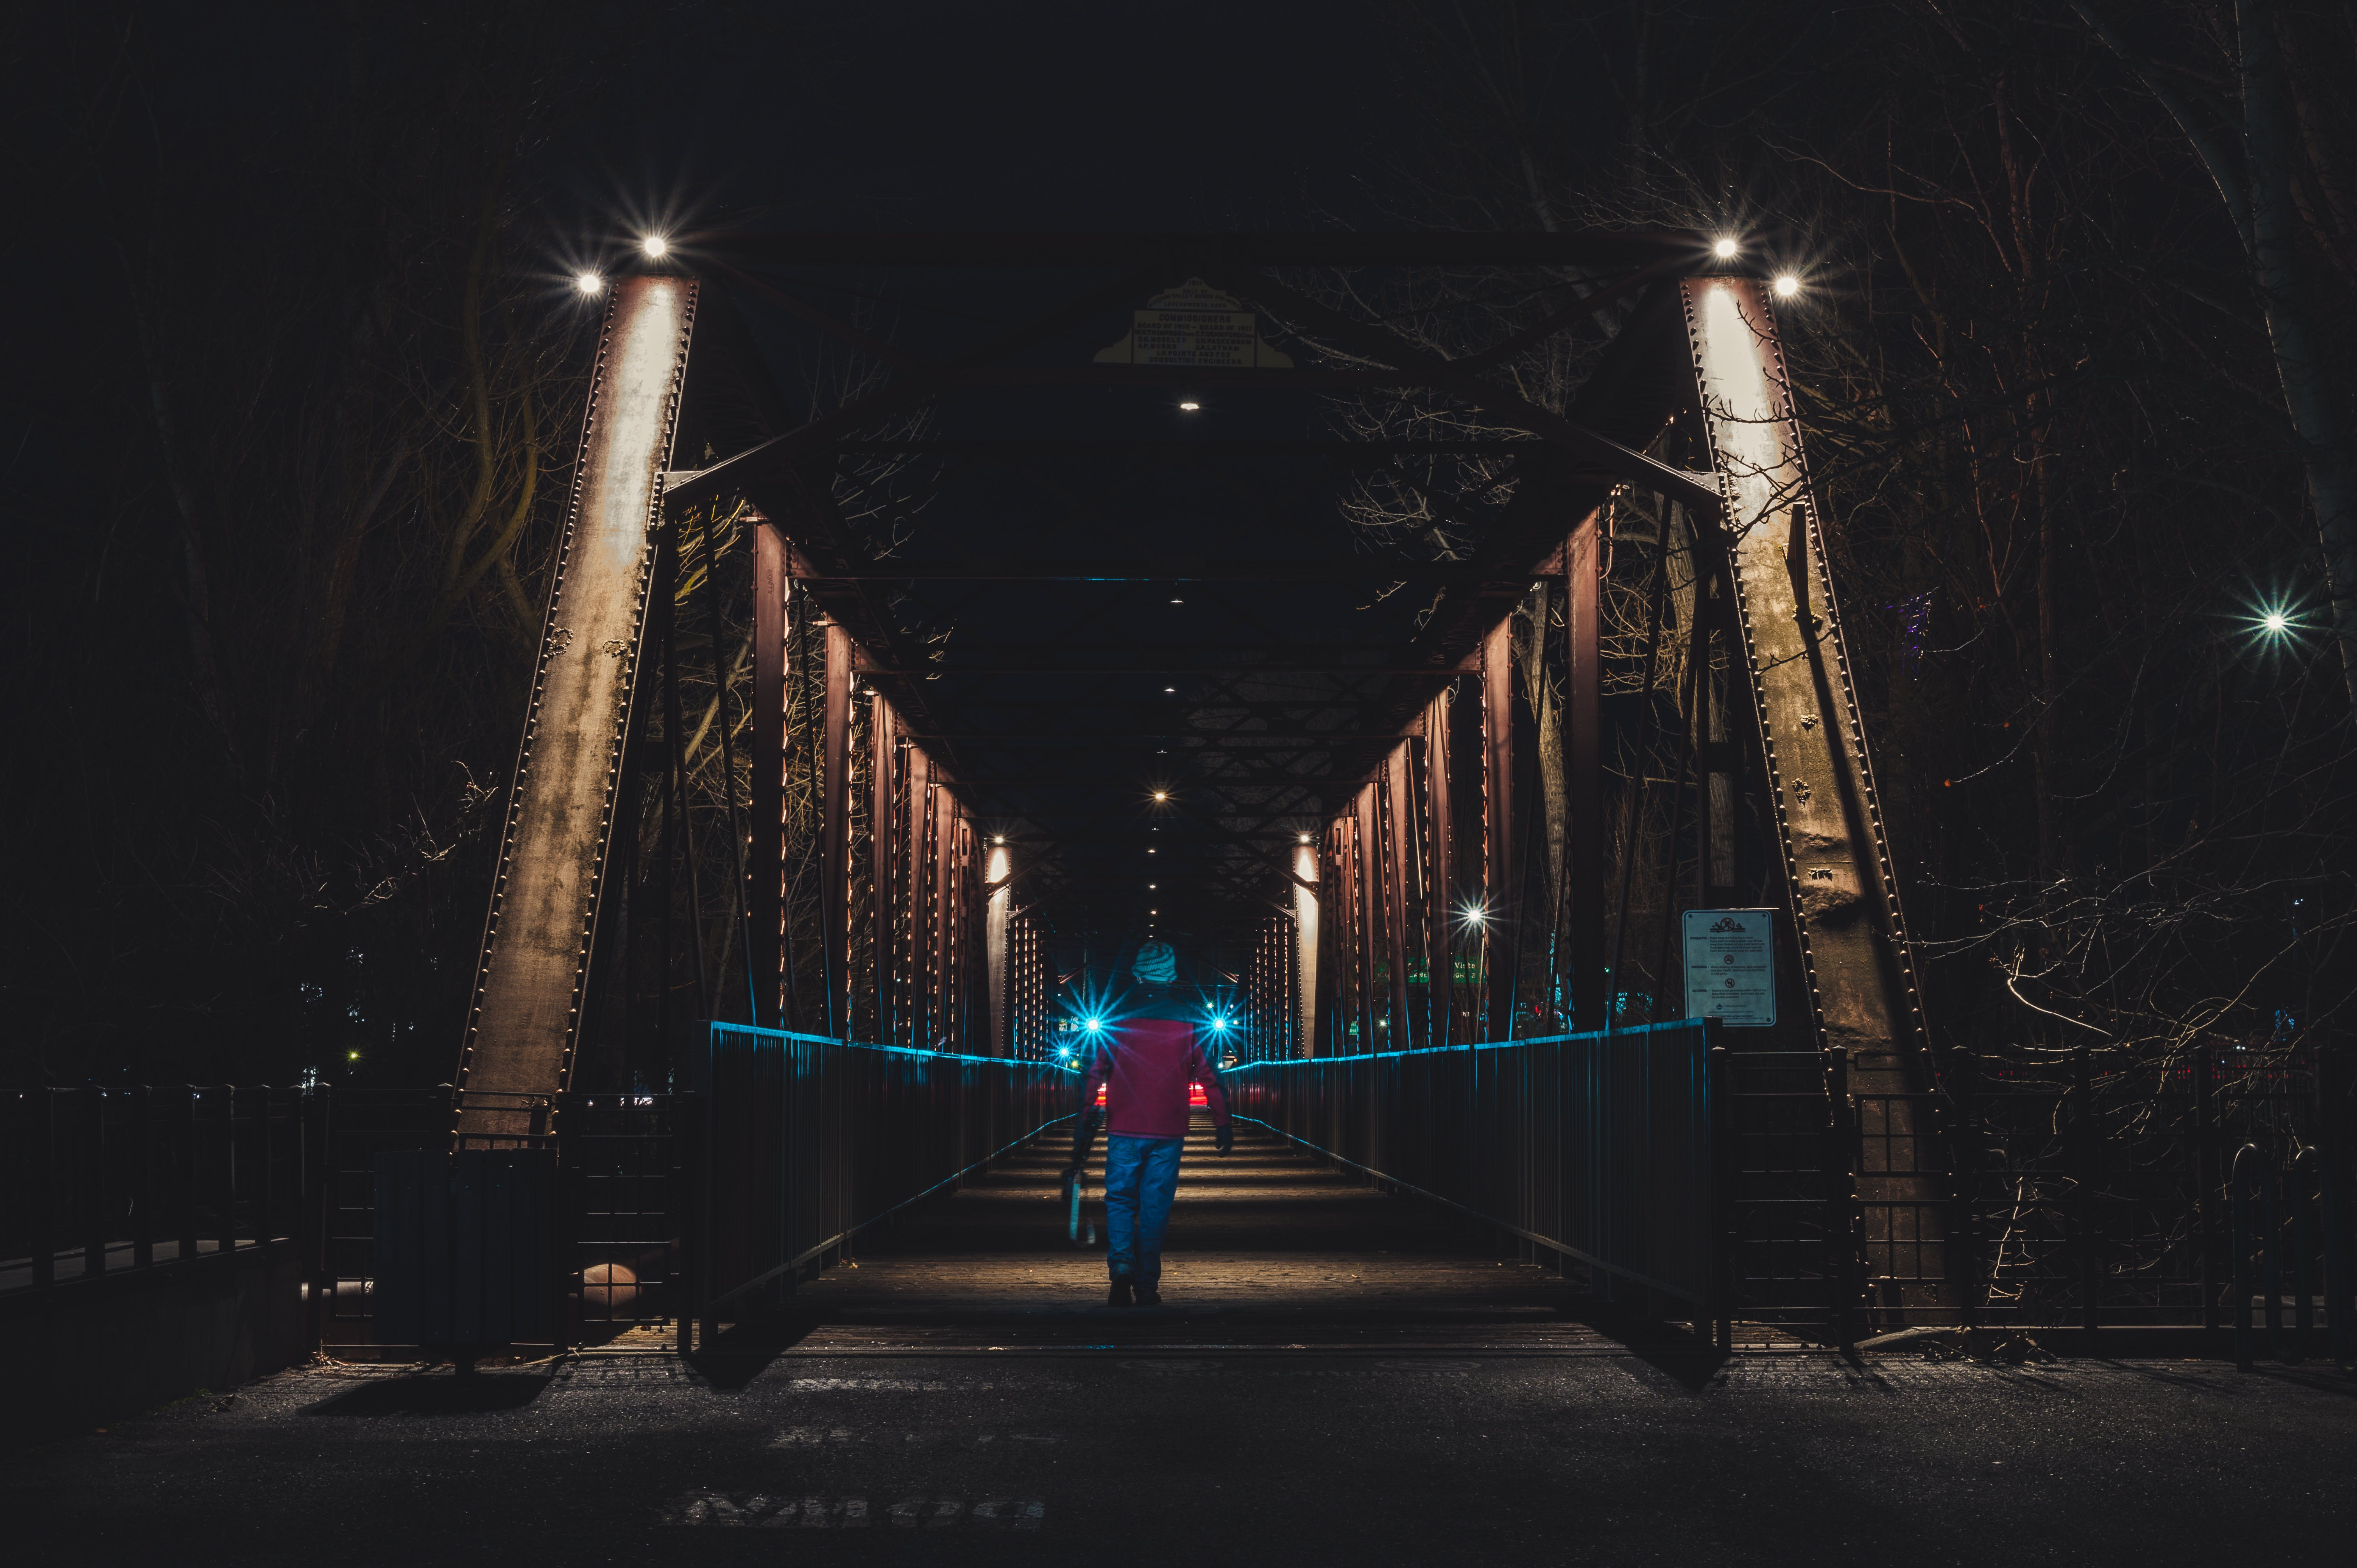 Person Walking in Bridge during Nighttime